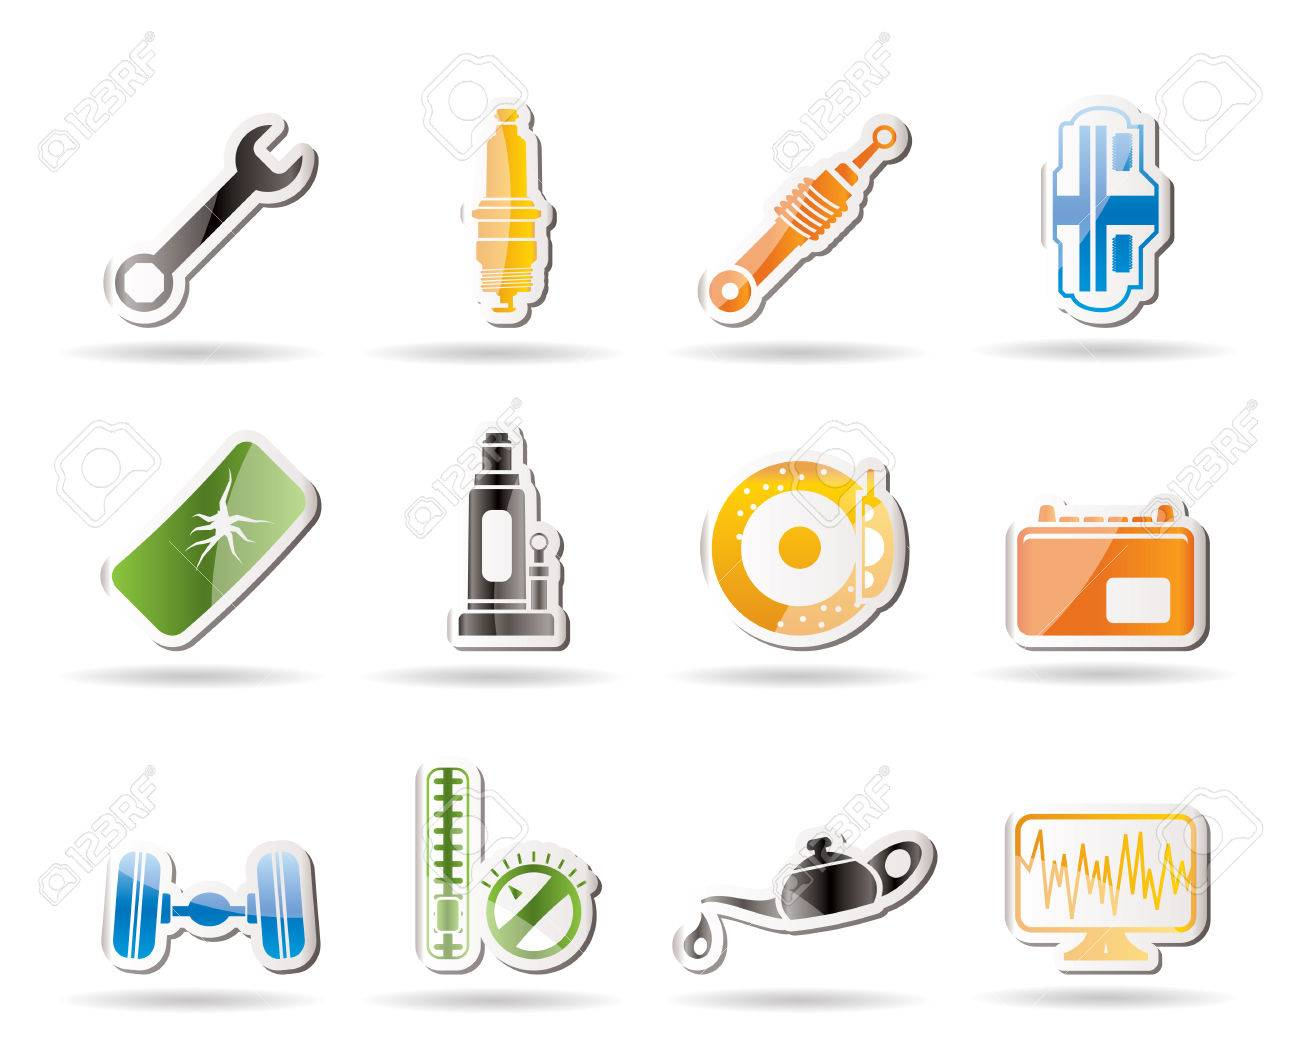 Simple Car Parts And Services Icons Royalty Free Cliparts, Vectors ...